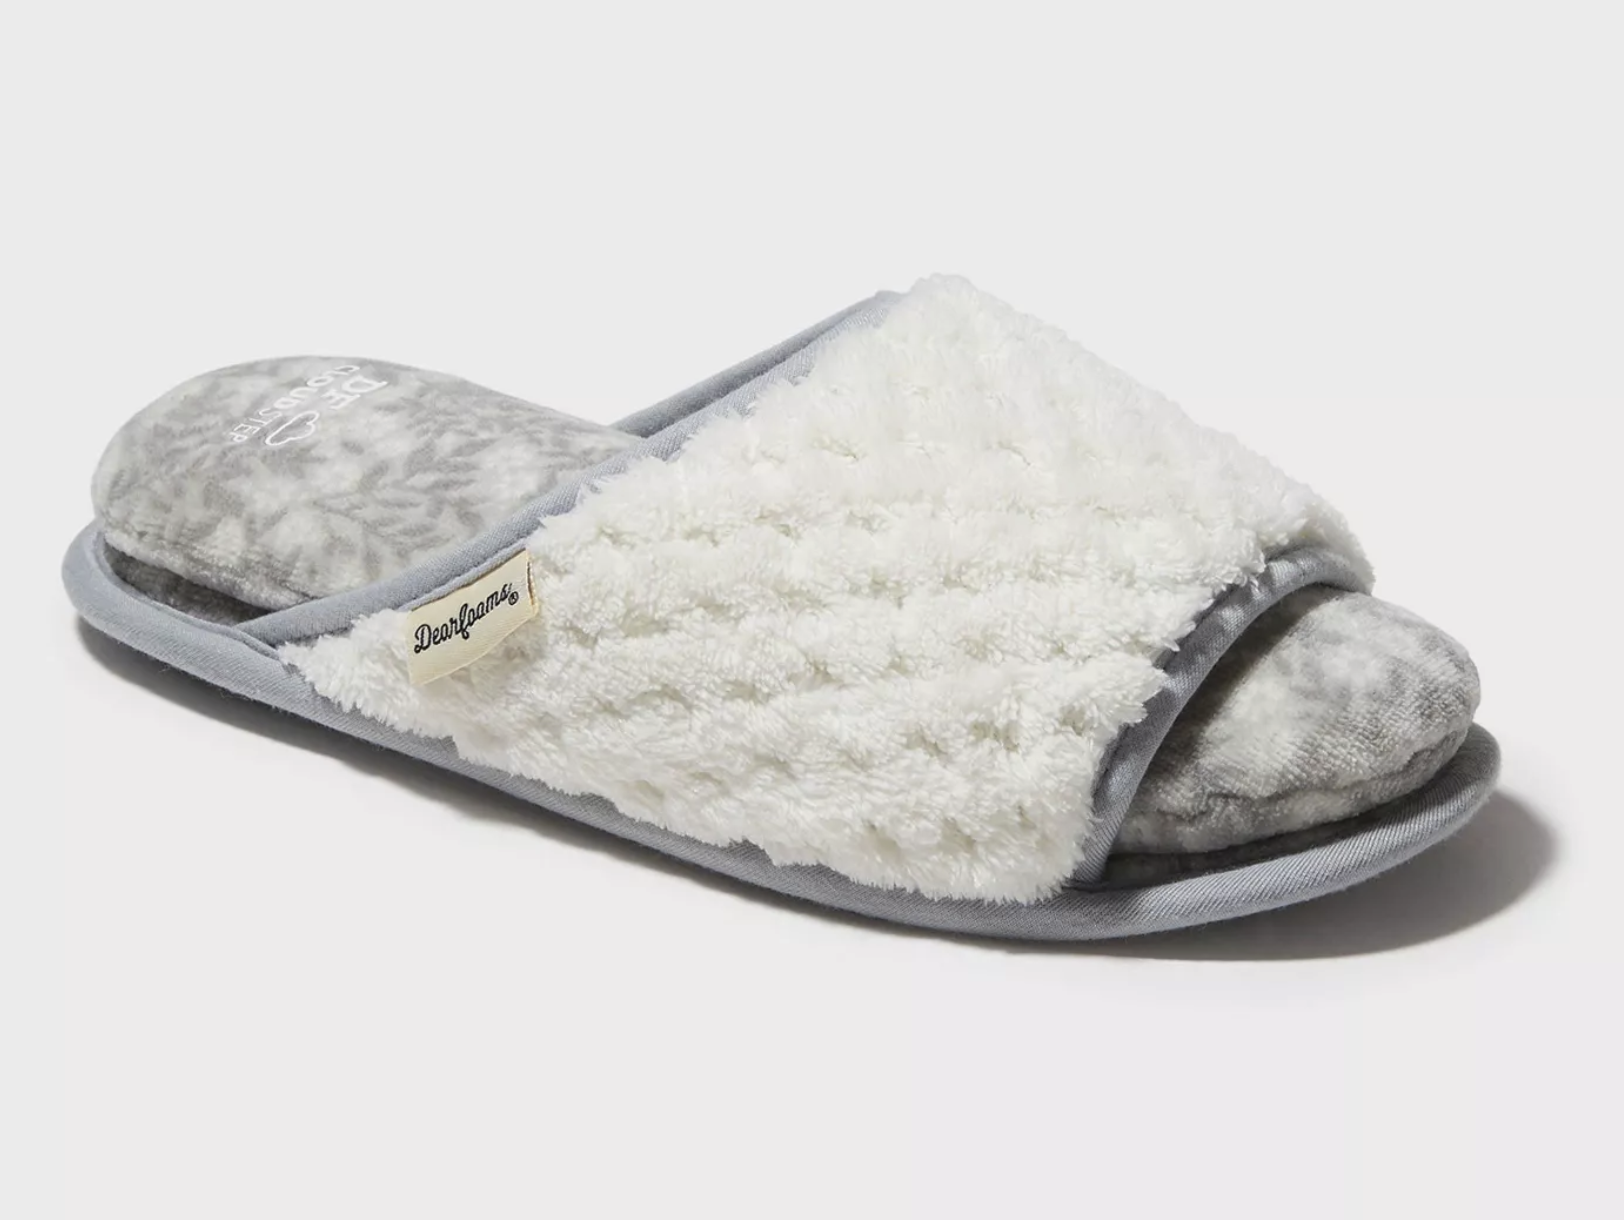 A white and gray open-toe slipper made entirely of cloth.